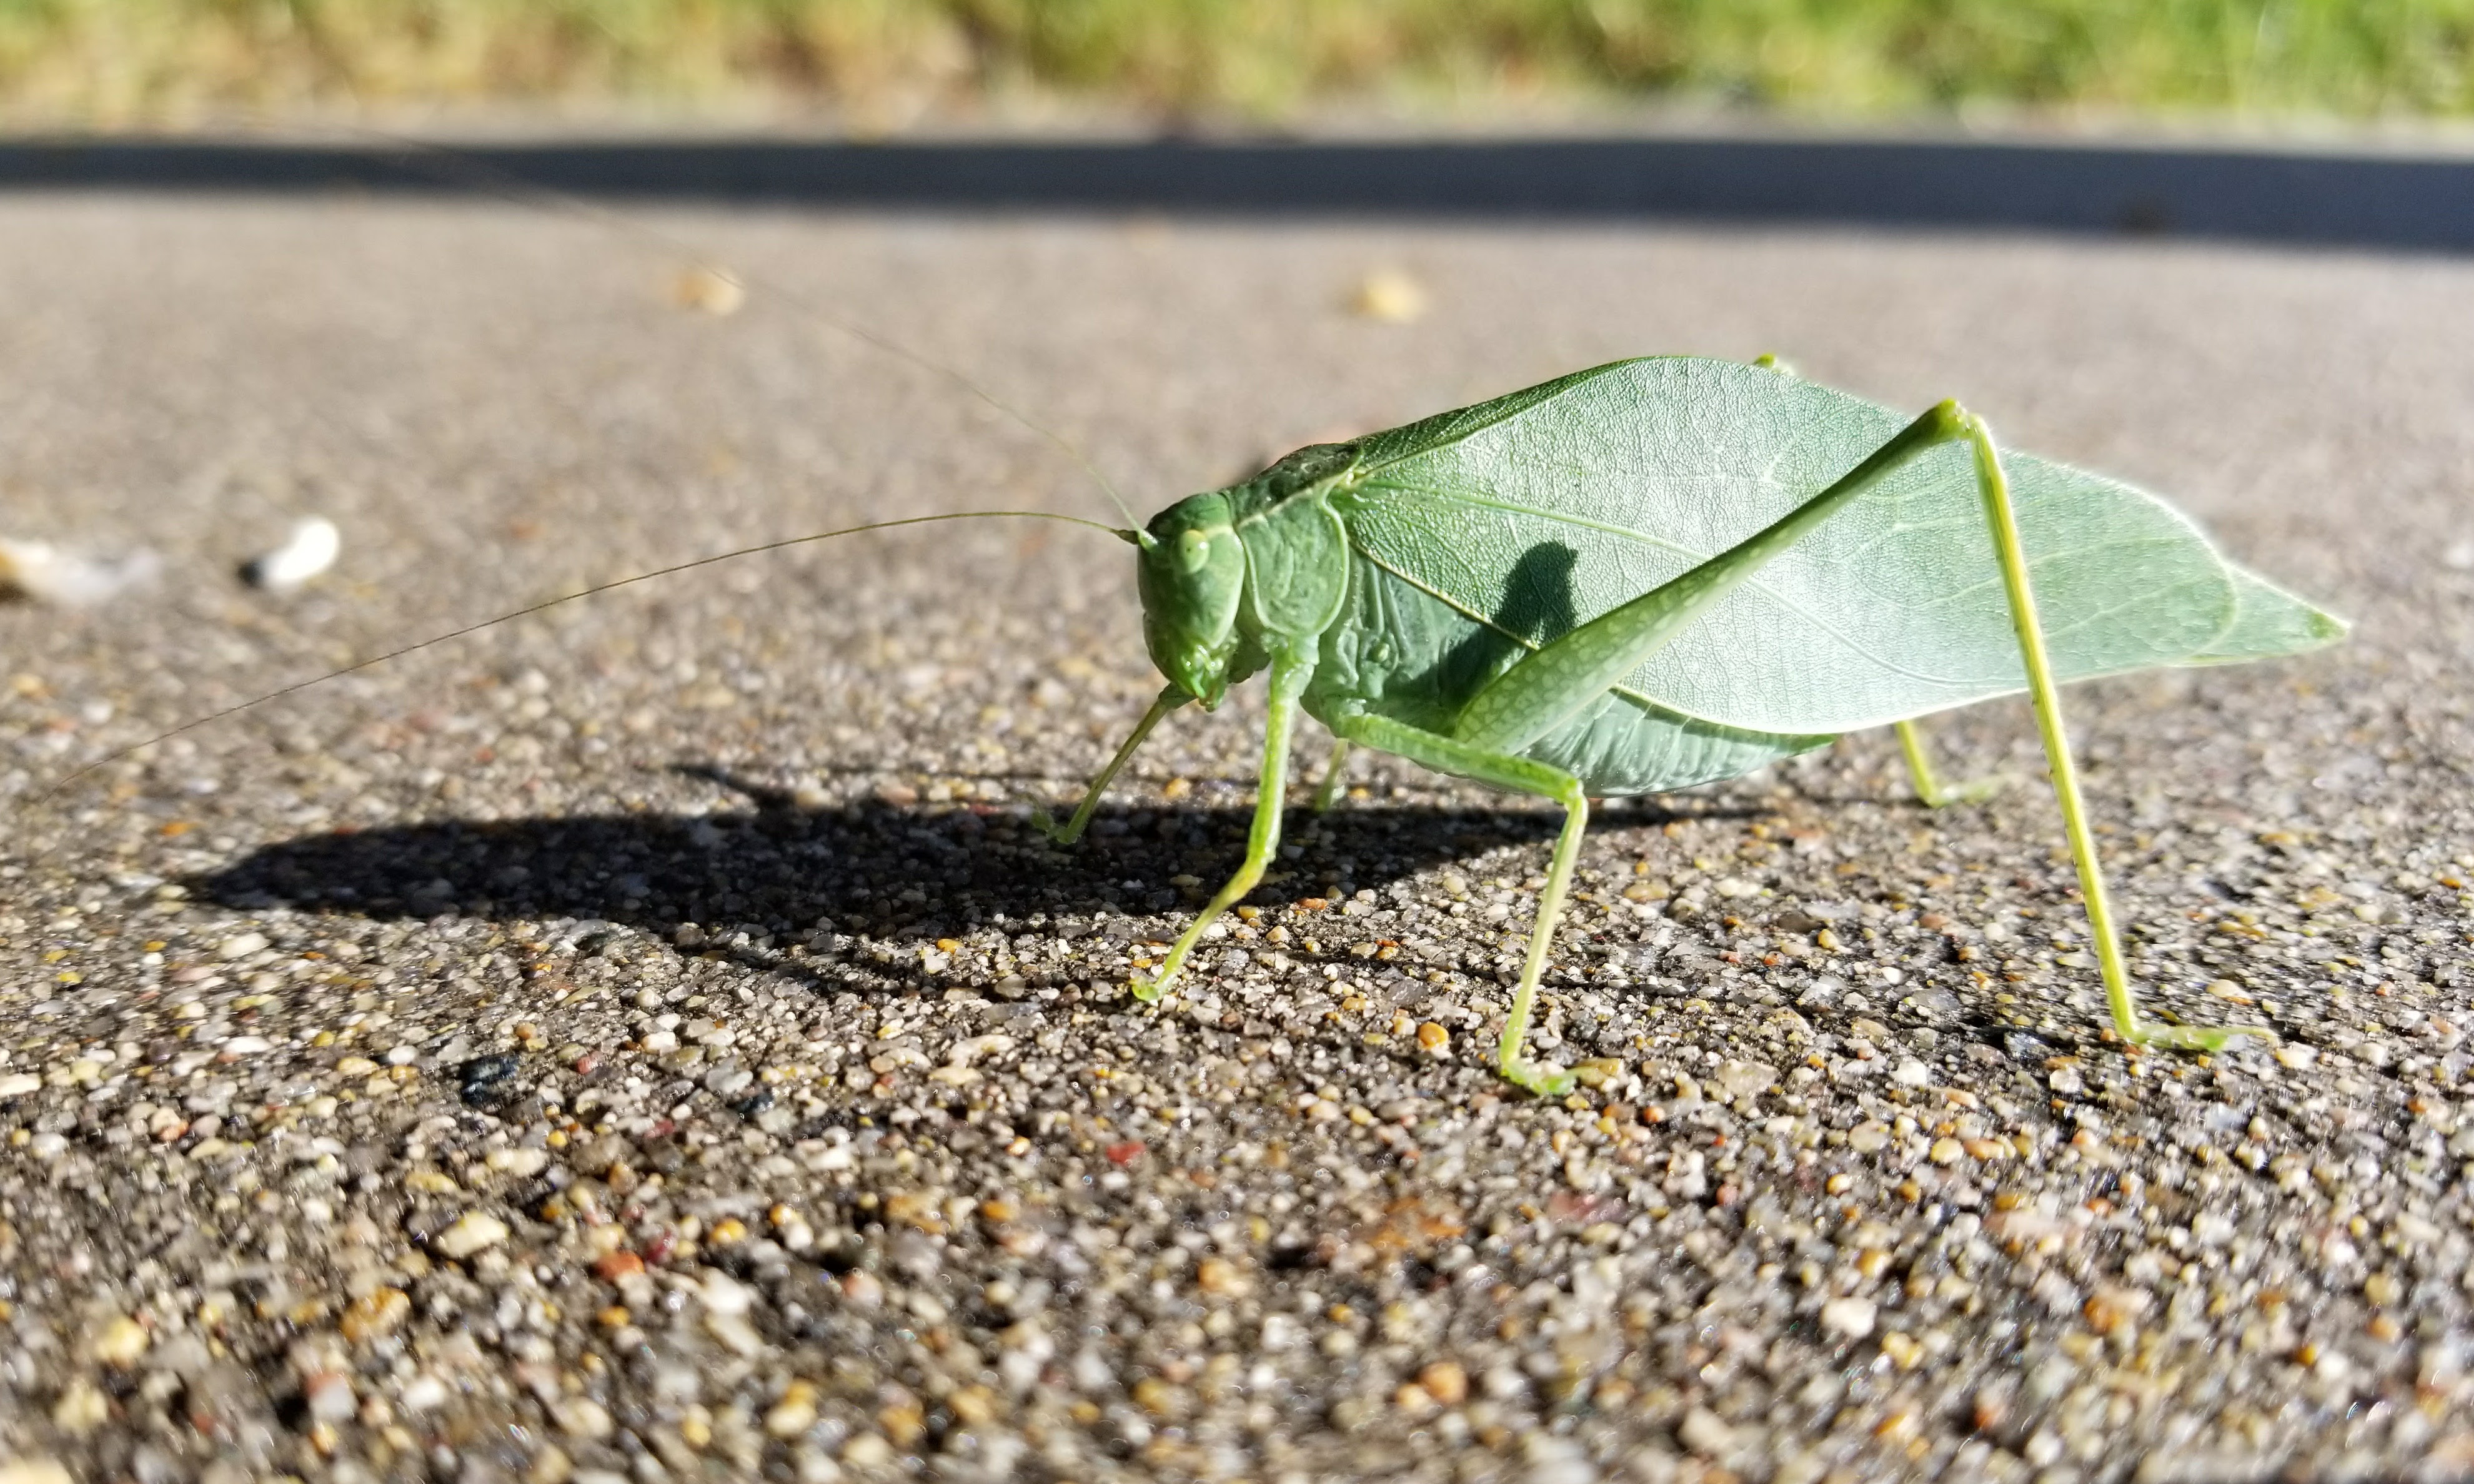 leaf insect photo by gwen nicodemus